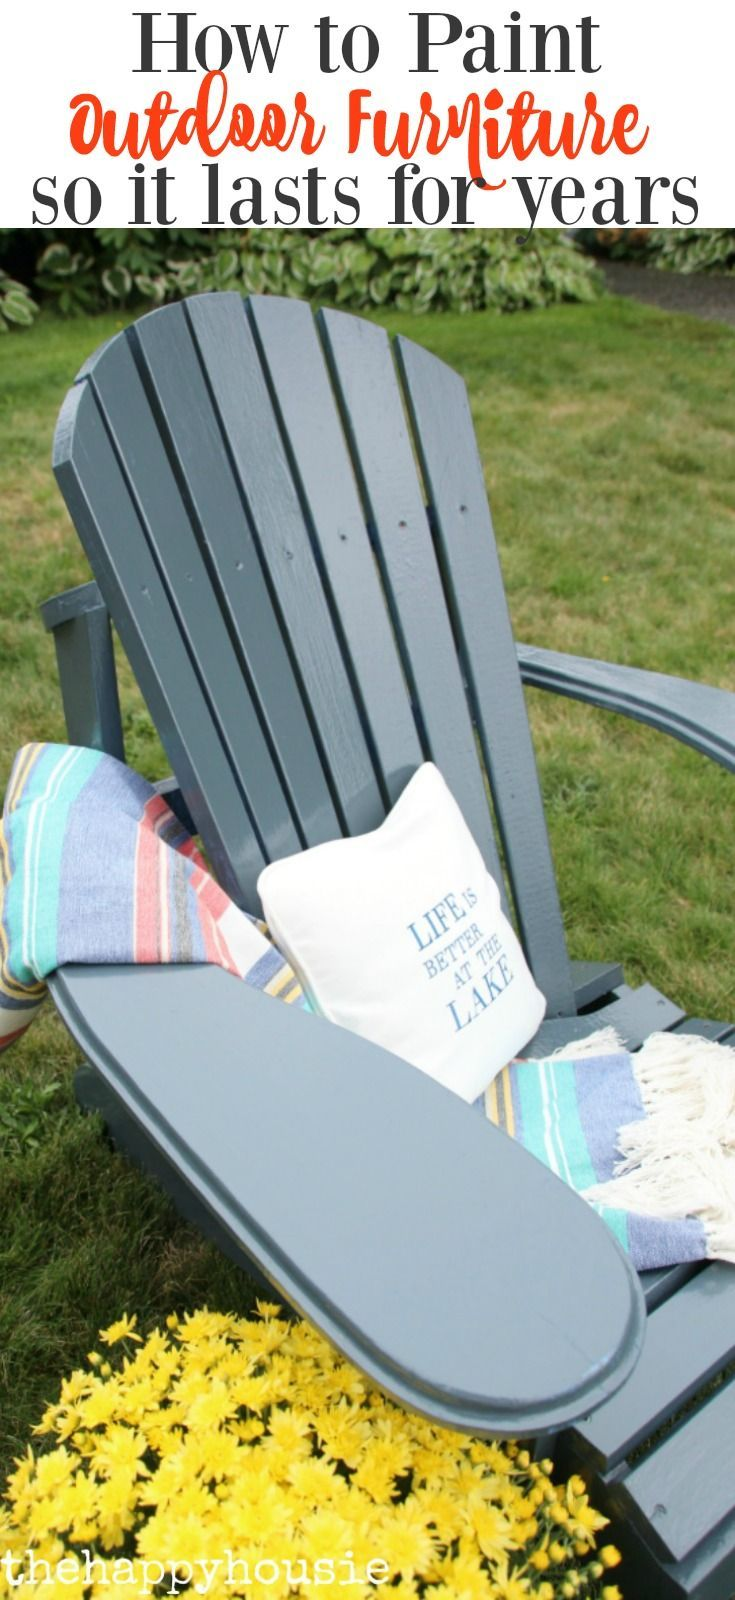 How To Paint Outdoor Furniture So The Finish Lasts In The Elements For Years Part 59